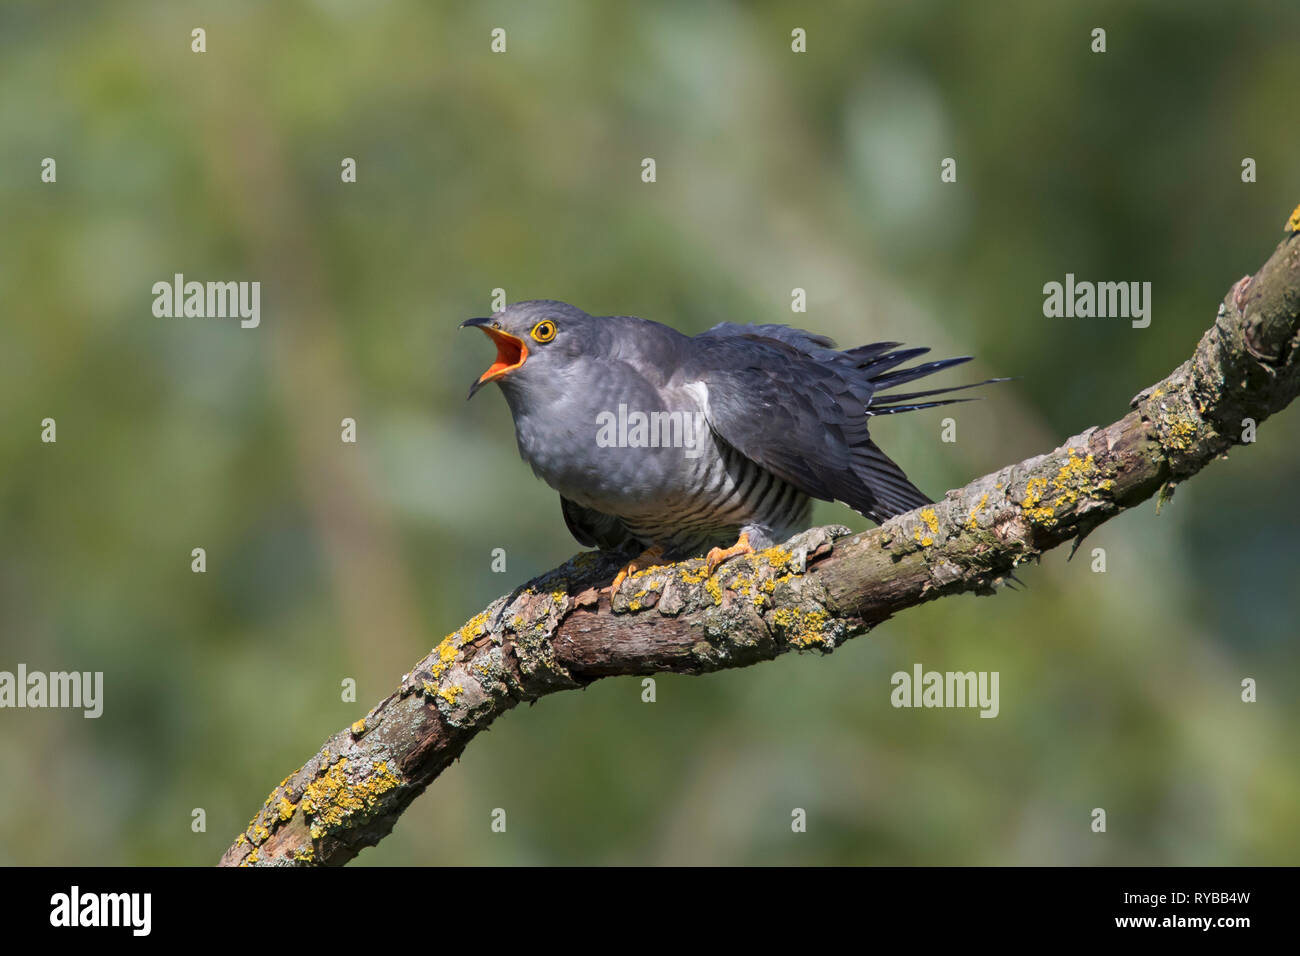 Common cuckoo (Cuculus canorus) male perched in tree and calling in spring - Stock Image